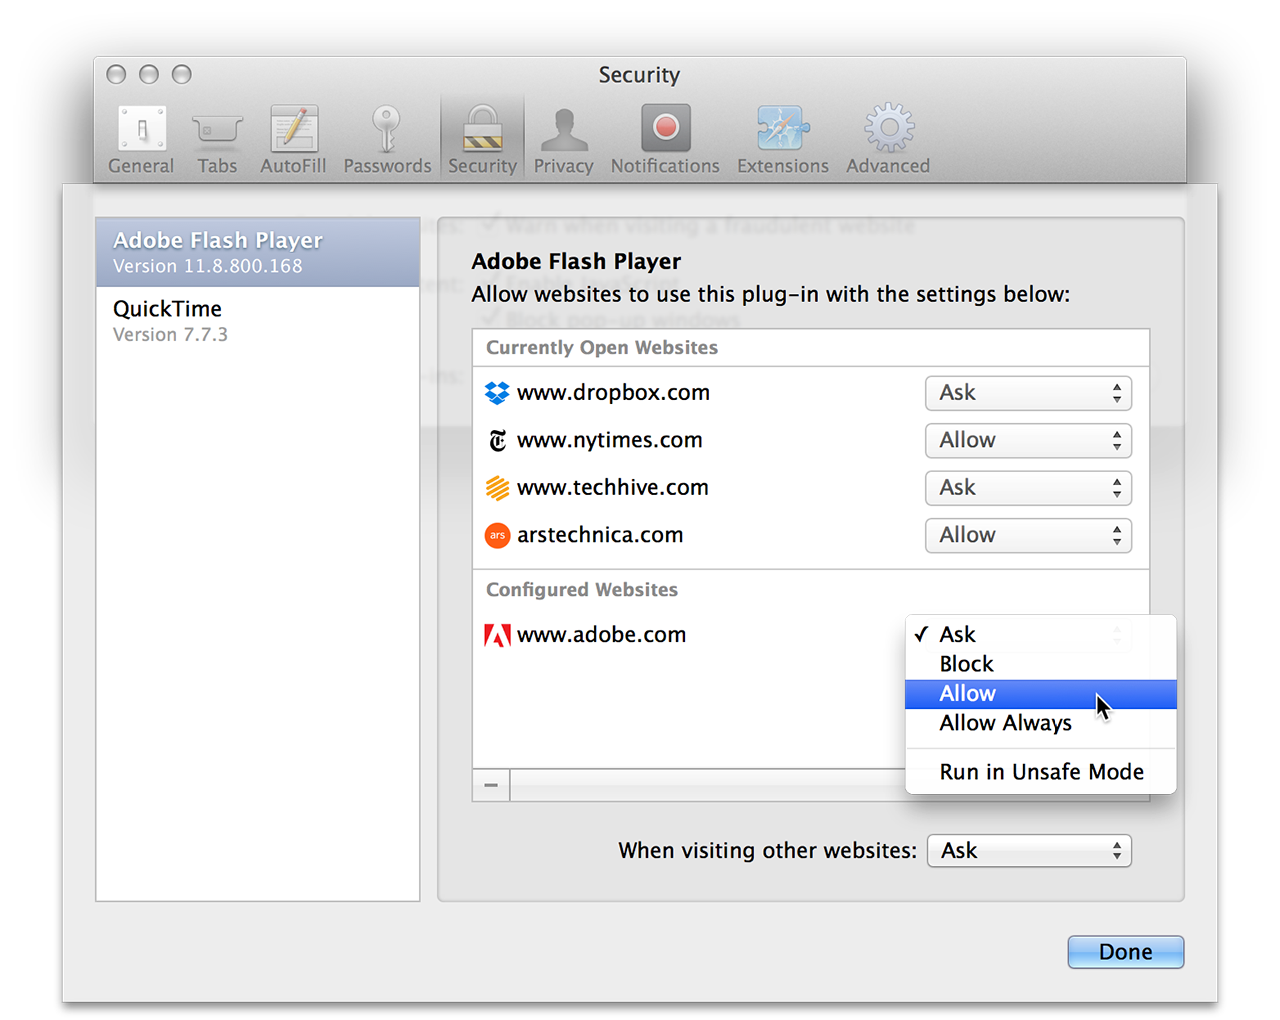 Aug 30, · How To: Restore Default Settings on Safari (Mac OS X Lion) 4 Replies I just installed the Mac OS X Lion GM update and noticed that Safari was behaving a bit weird after the update so I thought I reset it's settings to default.